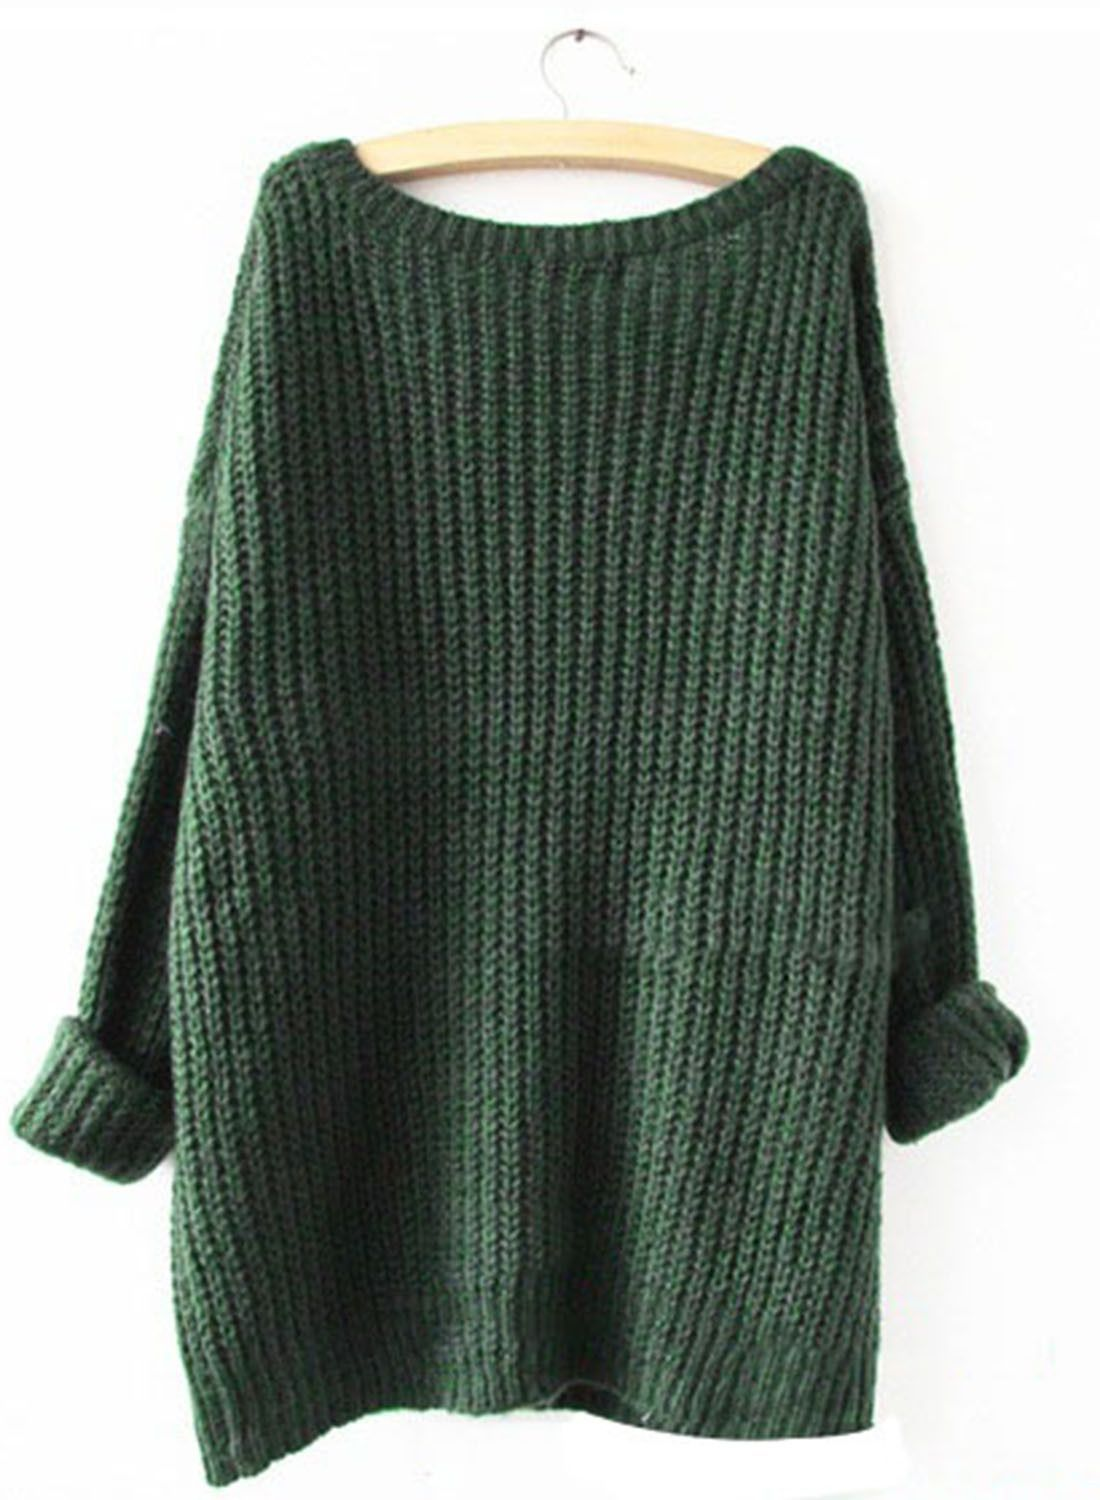 Green Oversized Loose Fit Chunky Knit Sweater | Products